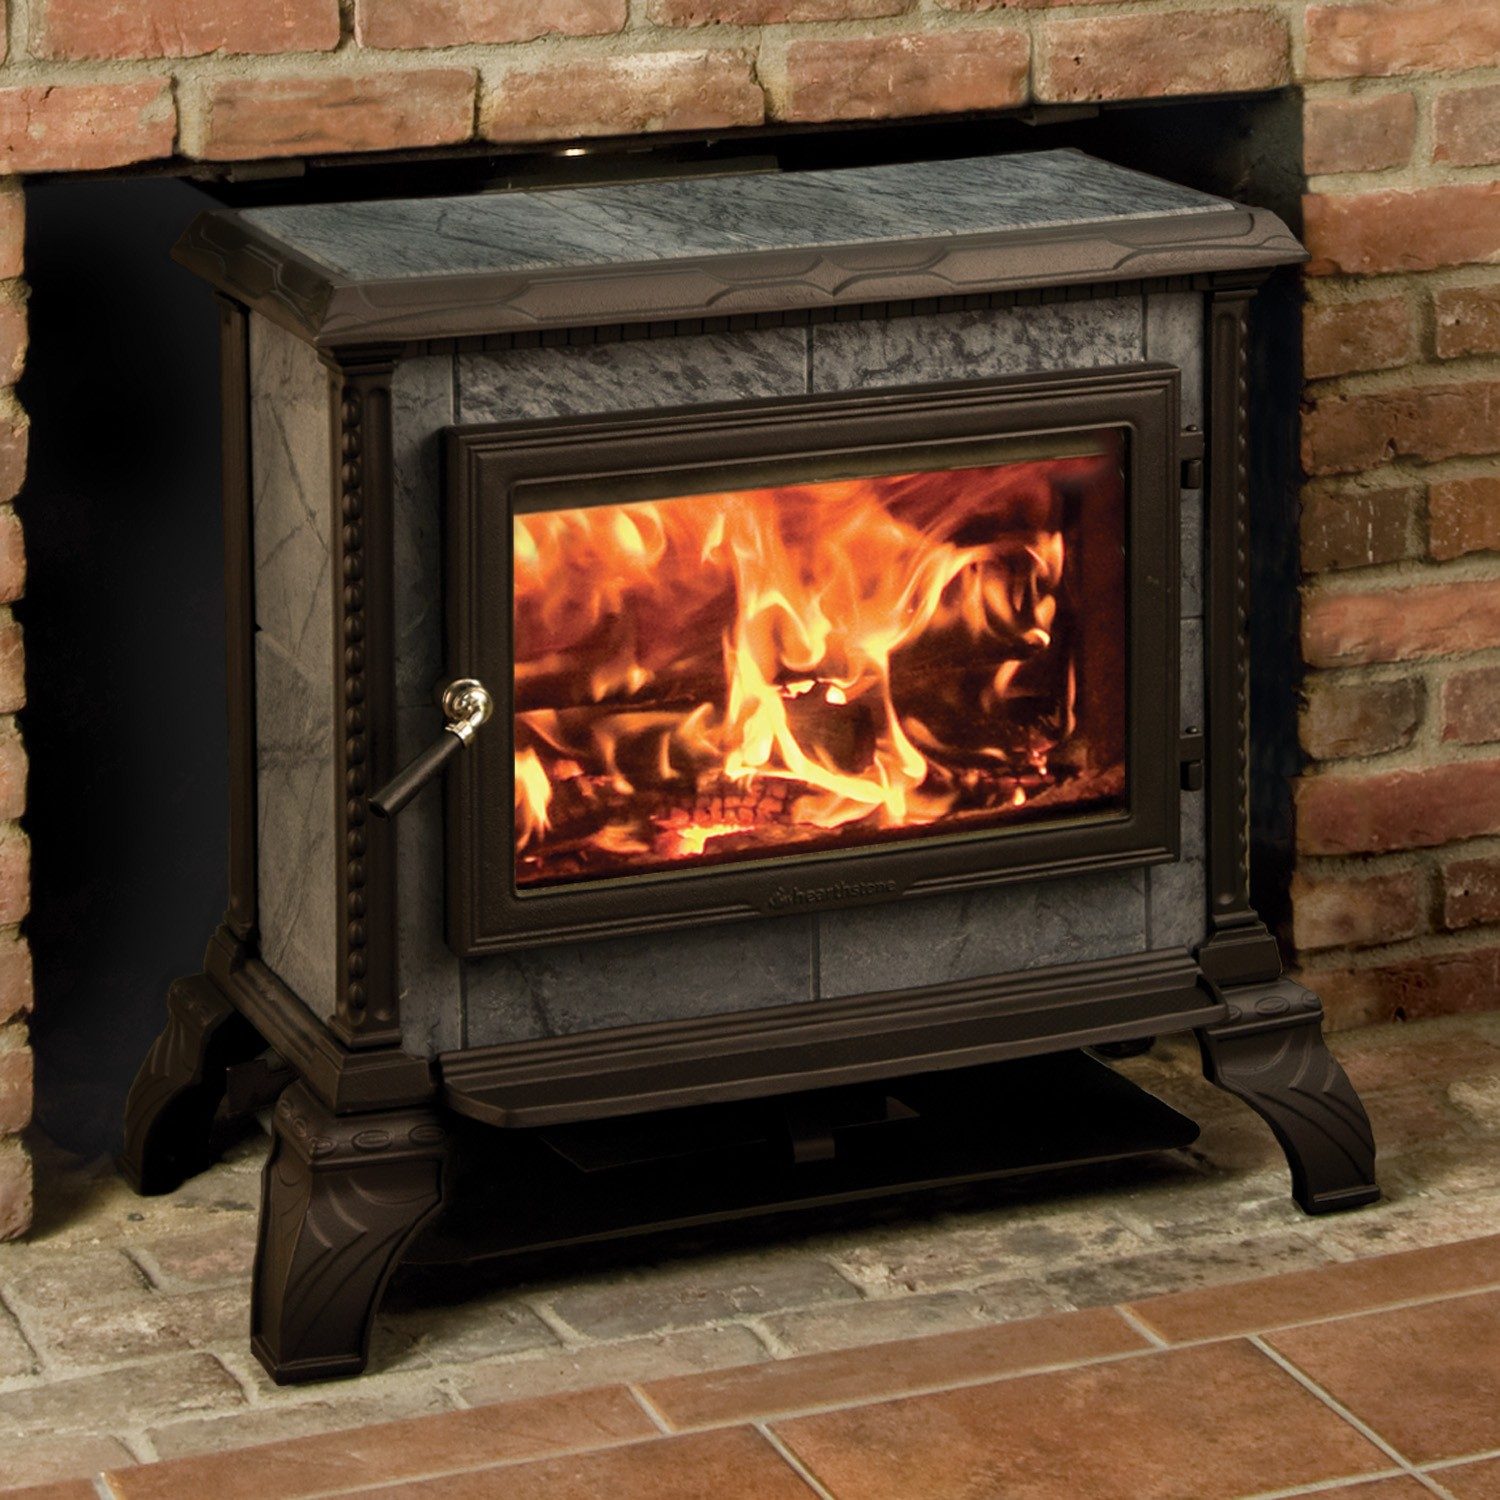 stoves plymouth fireplace rh plymouthfireplaces com